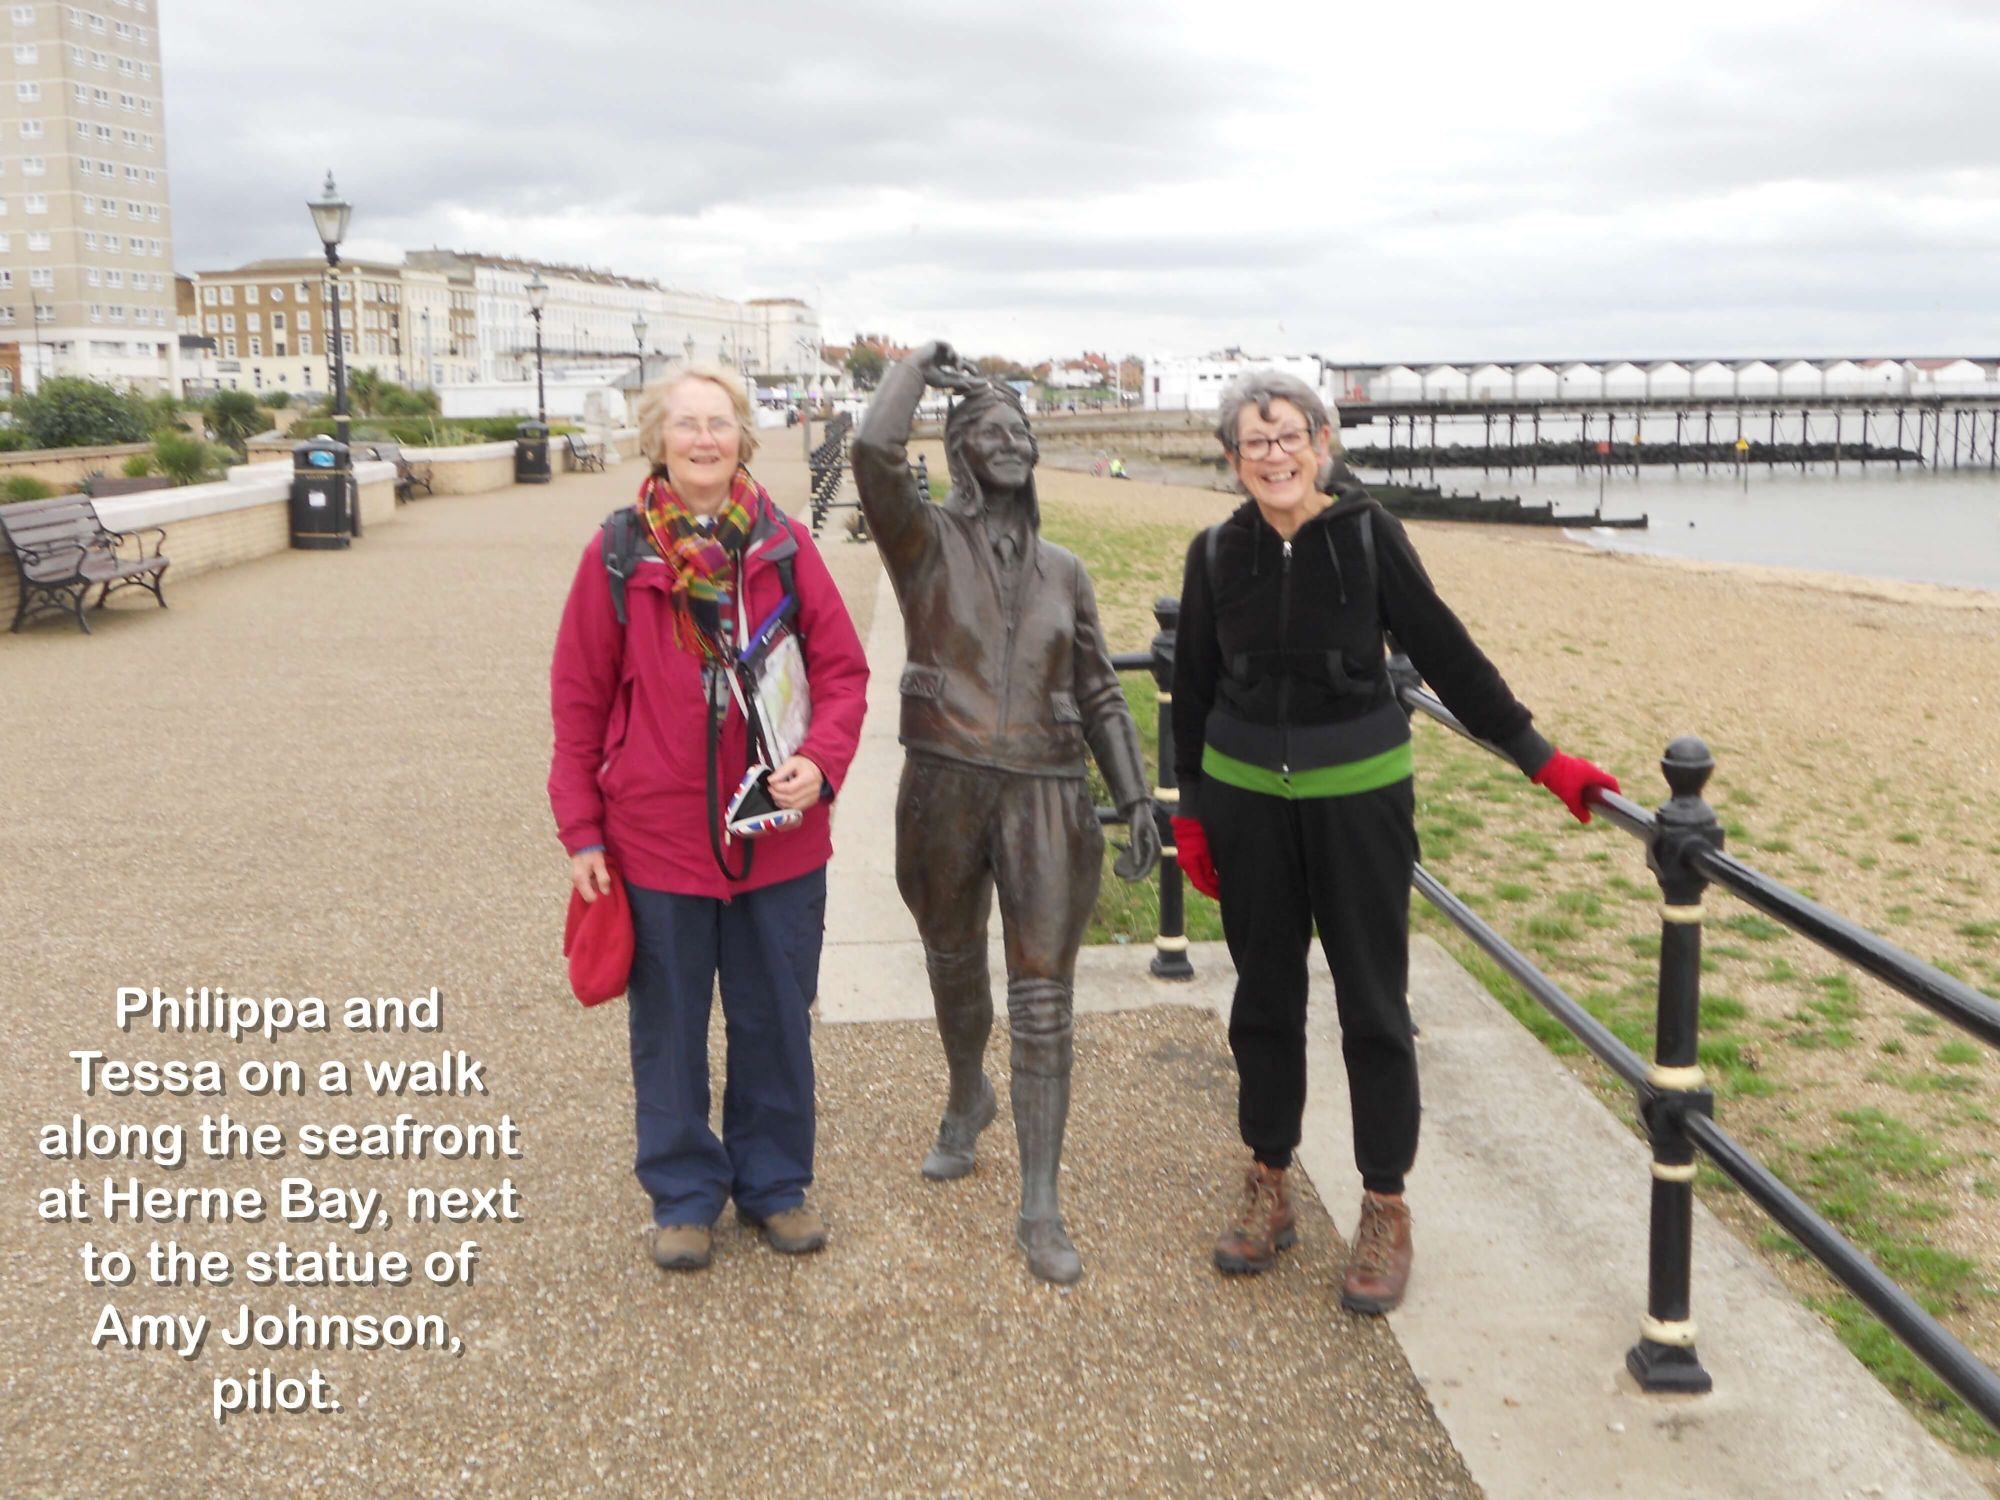 Philippa and Tessa on a walk along the seafront at Herne Bay, next to the statue of Amy Johnson, pilot.